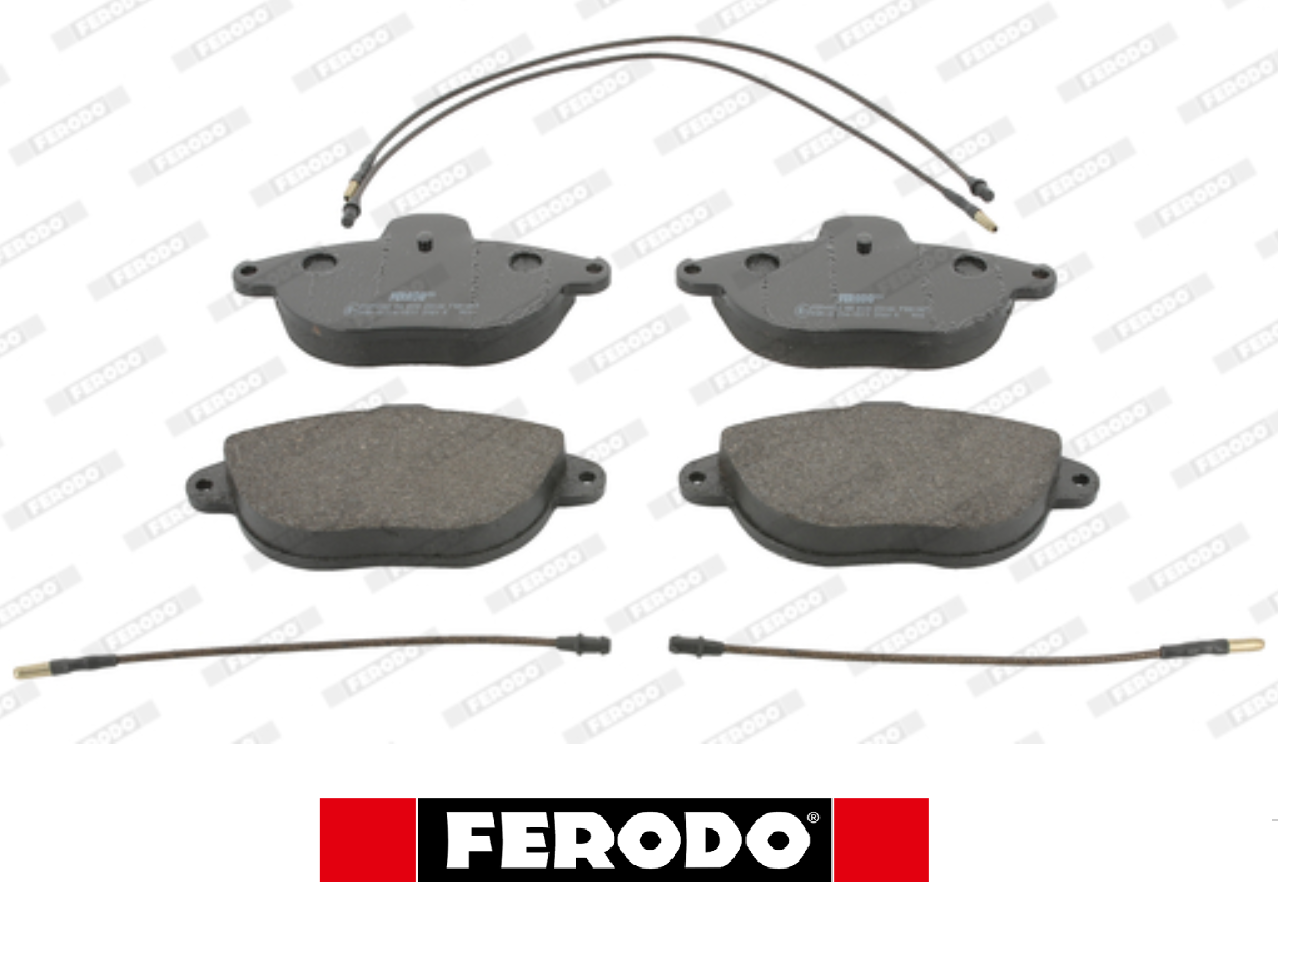 KIT FRONT BRAKE PADS SET CITROEN XANTIA FERODO FDB1069